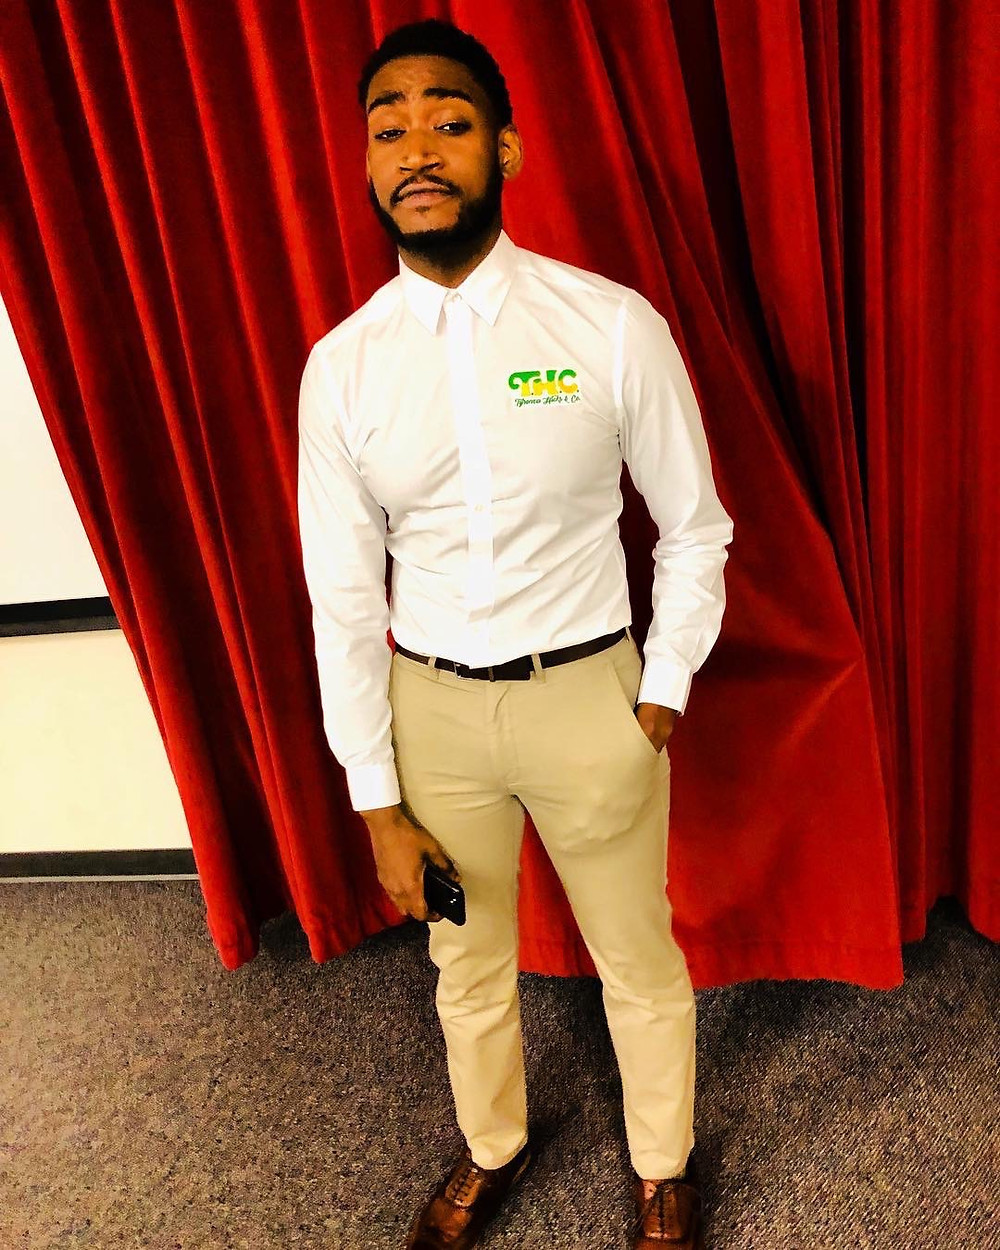 Tyronza Hicks is Entrepreneur, Podcast Personality, Blog Writer & Scholar. He will be graduating his Master's in Communications from Grand Valley State University.